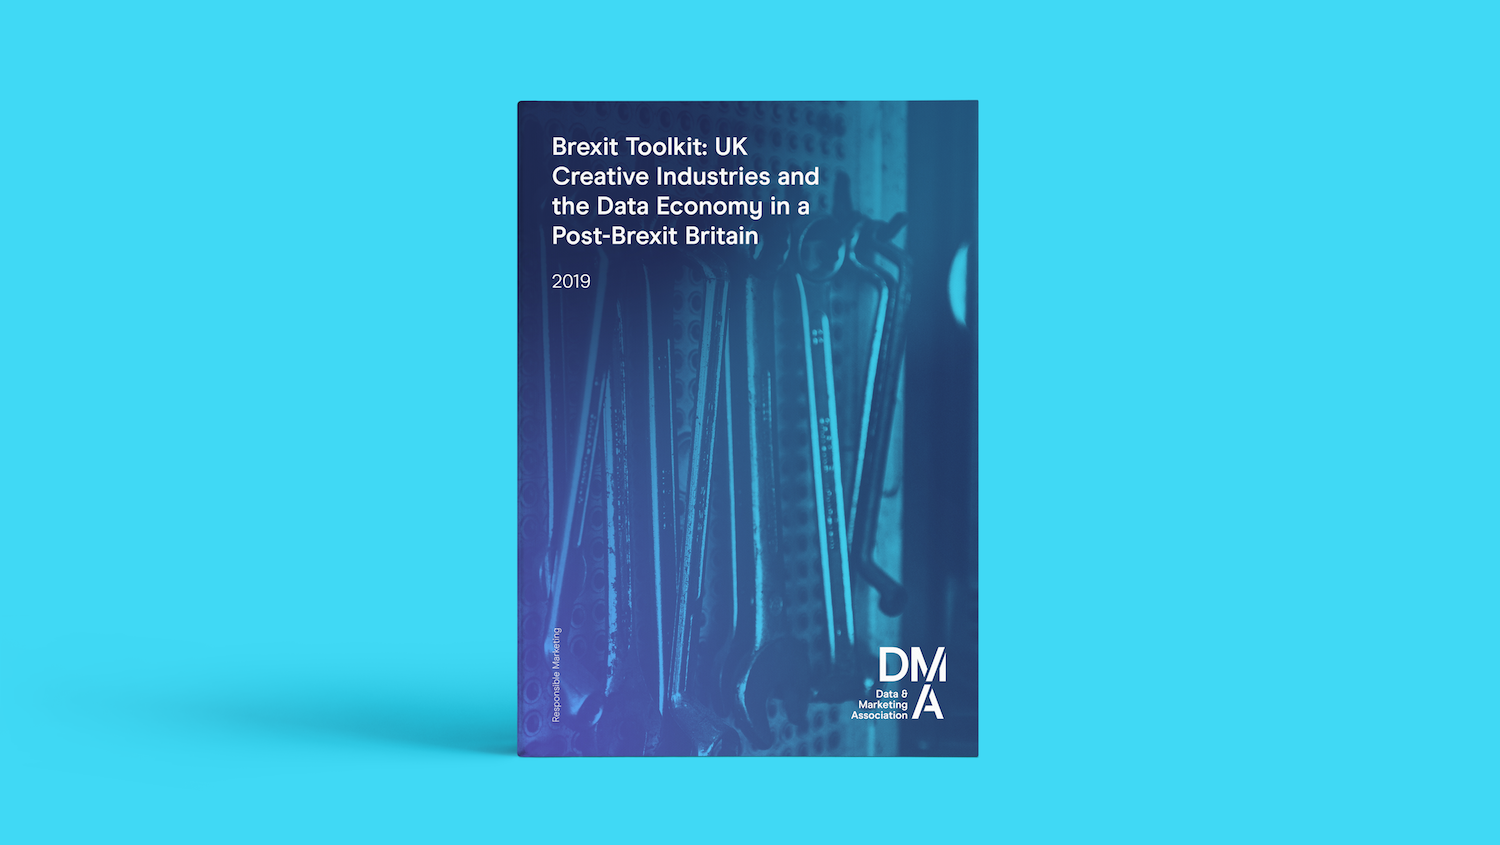 Brexit Toolkit - UK Creative Industries and Data Economy in a Post-Brexit Britain